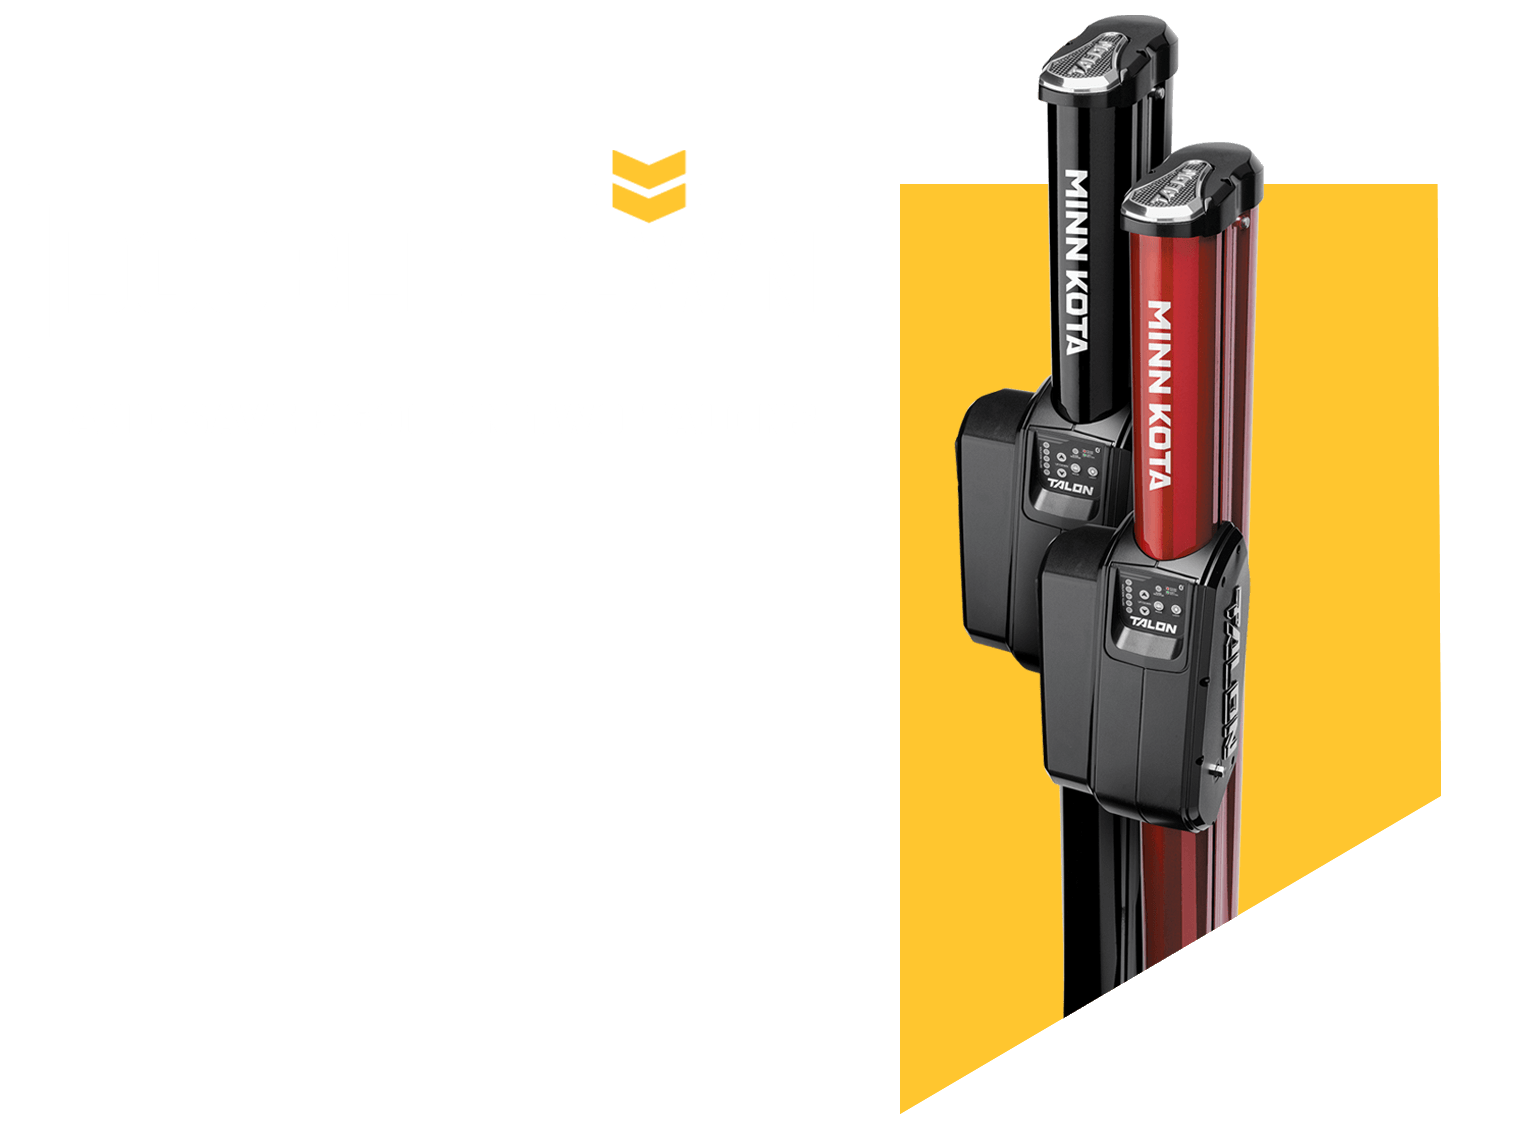 double-down-on-talon.png